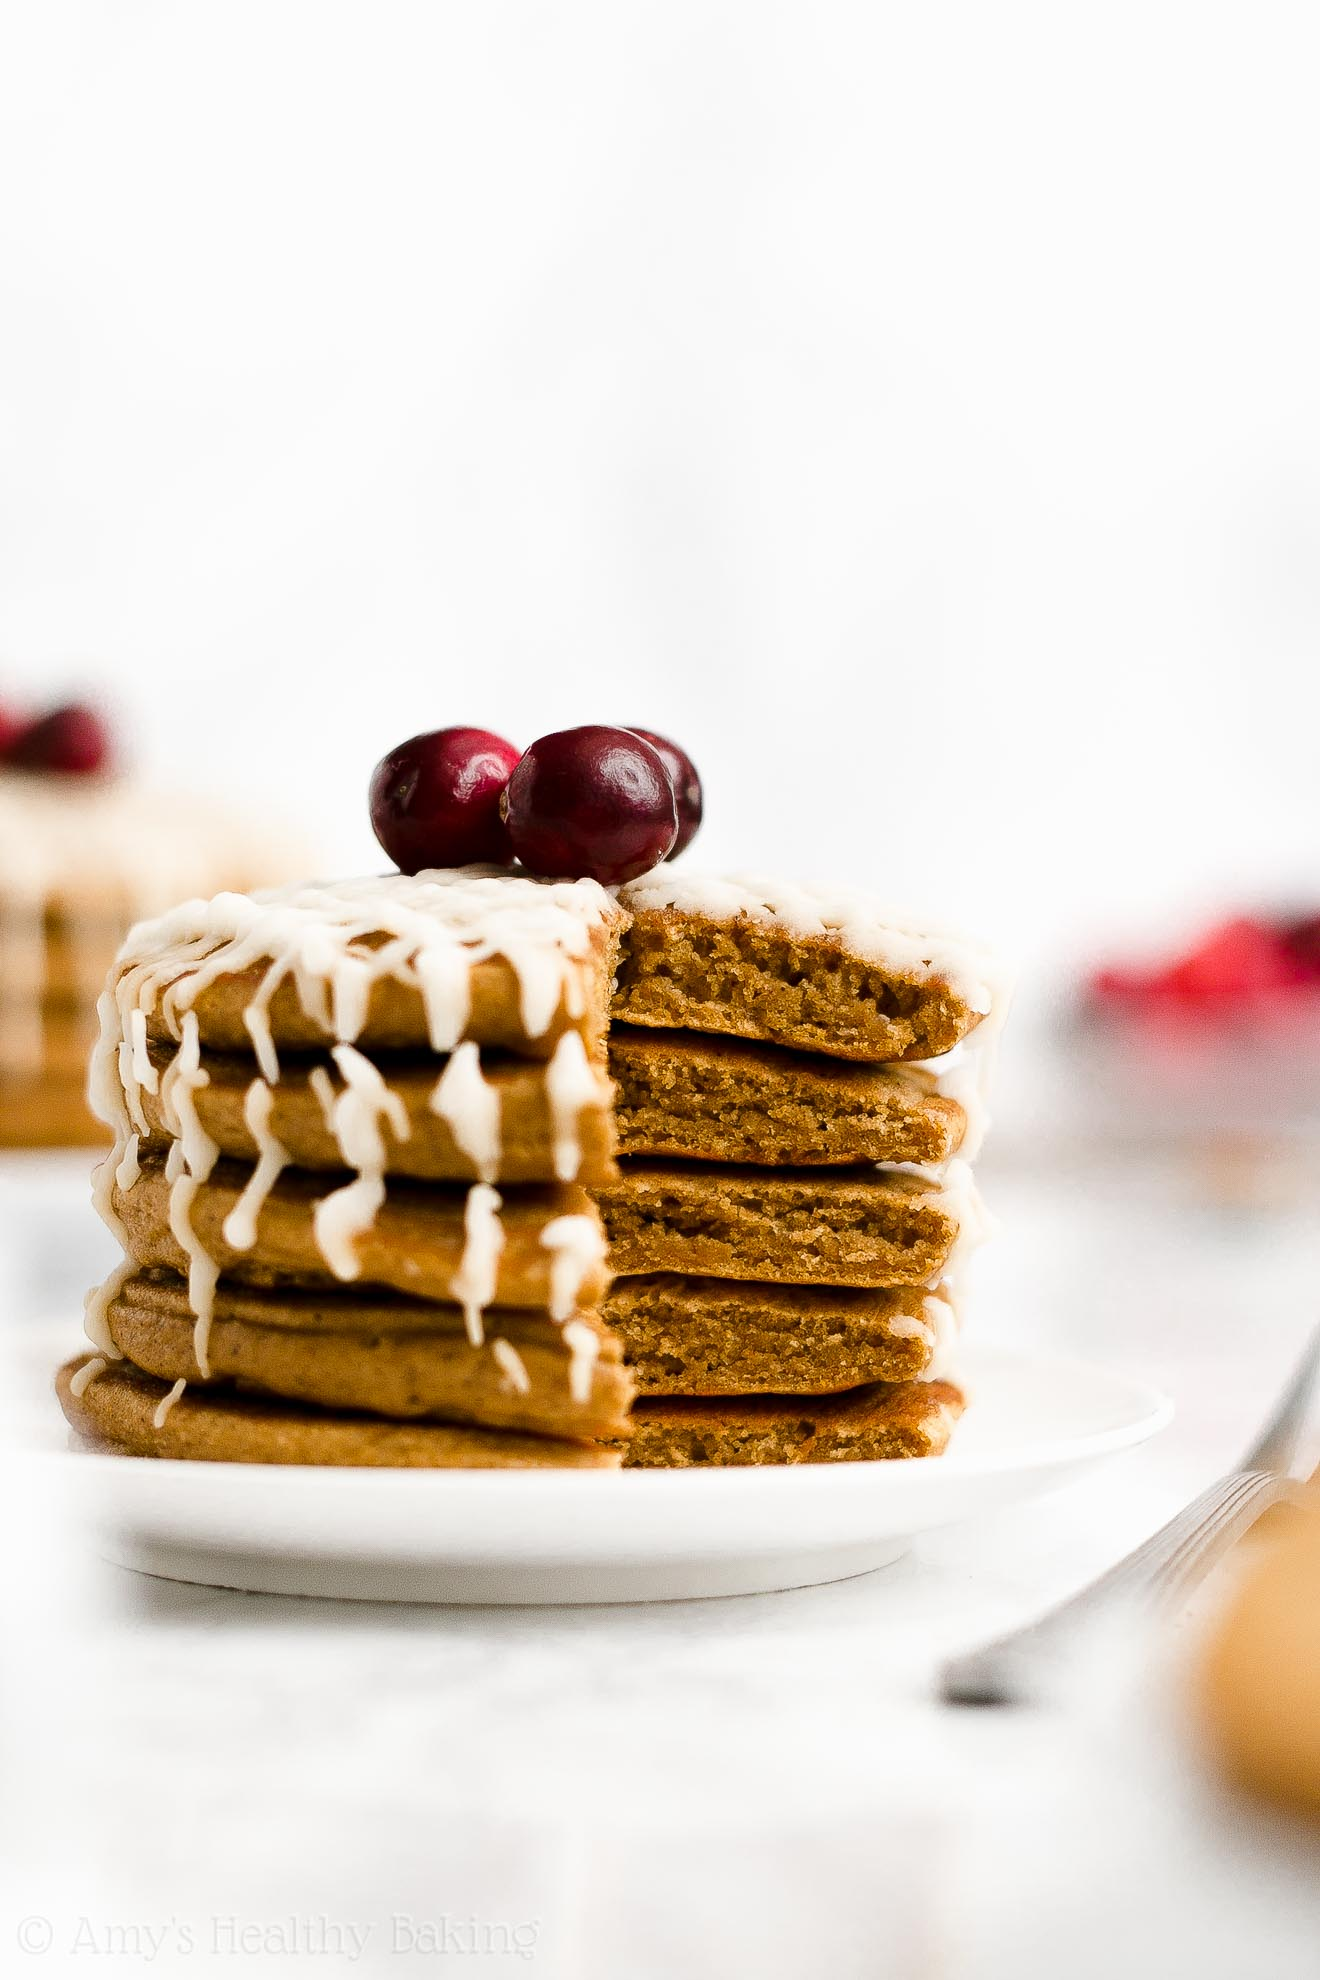 BEST EVER Easy Healthy Homemade Whole Wheat Fluffy Gingerbread Pancakes